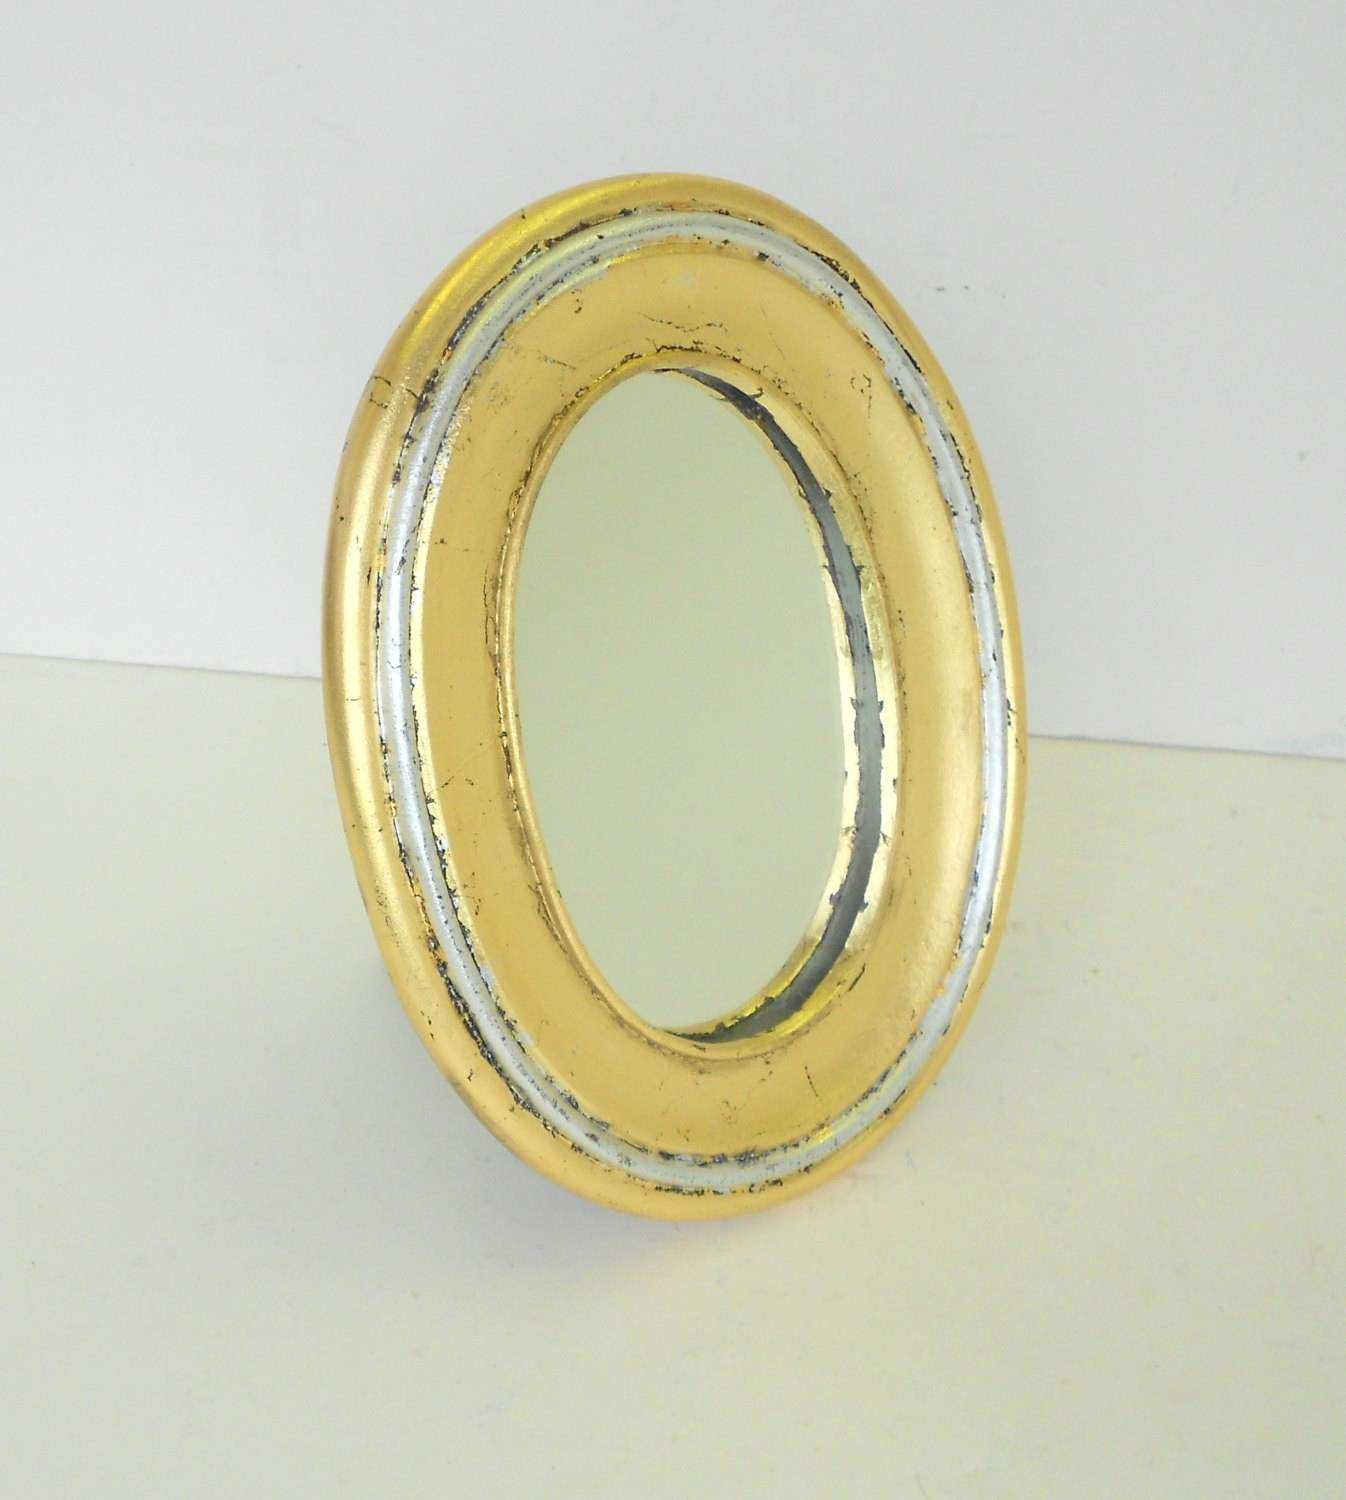 Oval Wall Mirrors Decorative Inspirational 8 X 7 Mirror Oval Wall ...